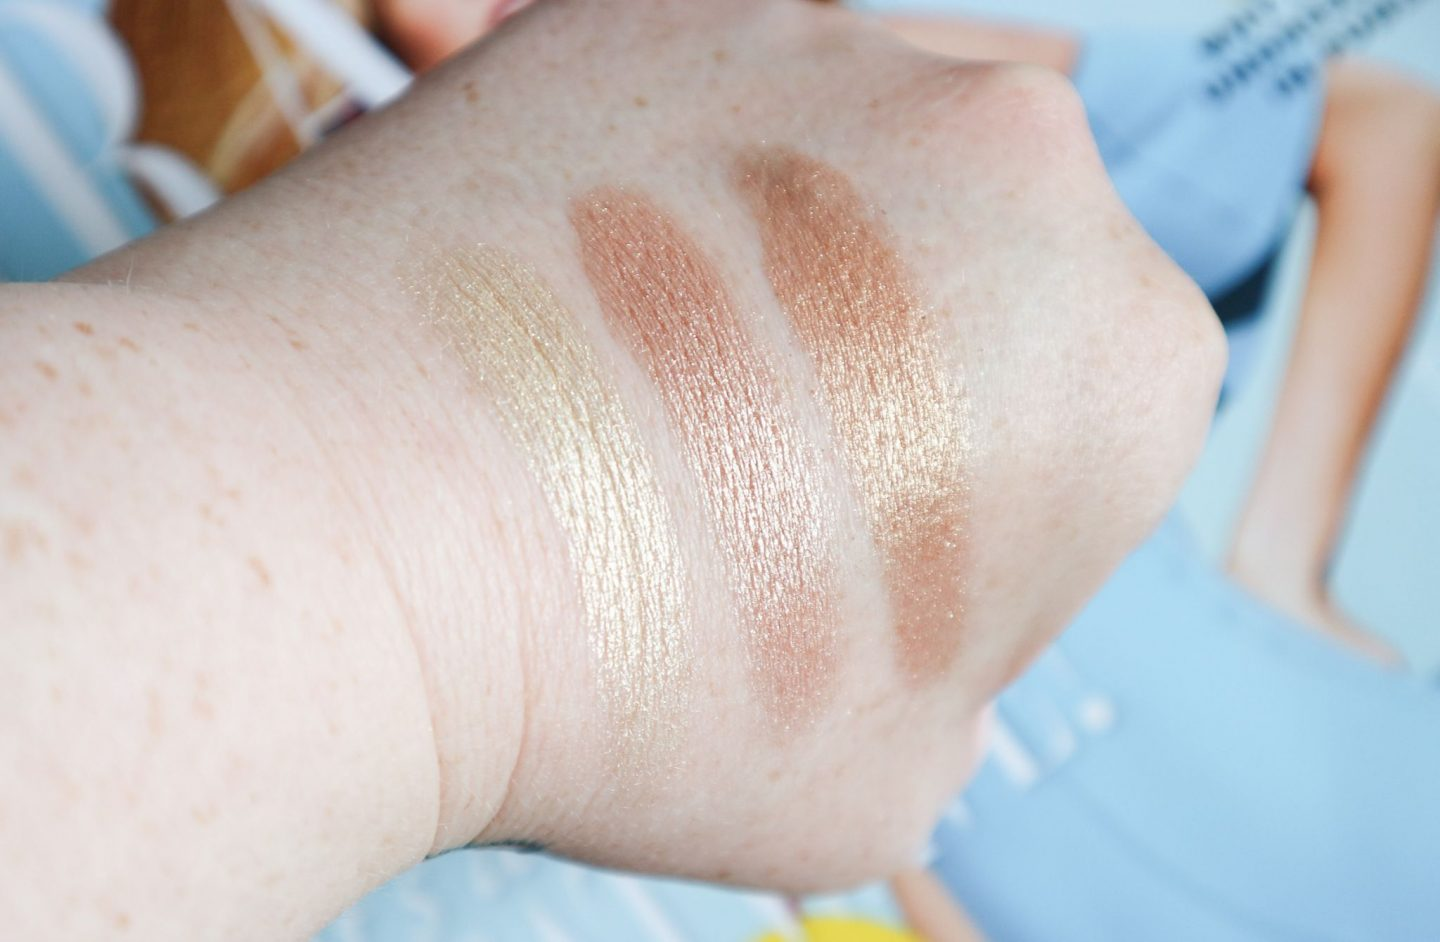 Charlotte Tilbury Bars of Gold Palette swatches